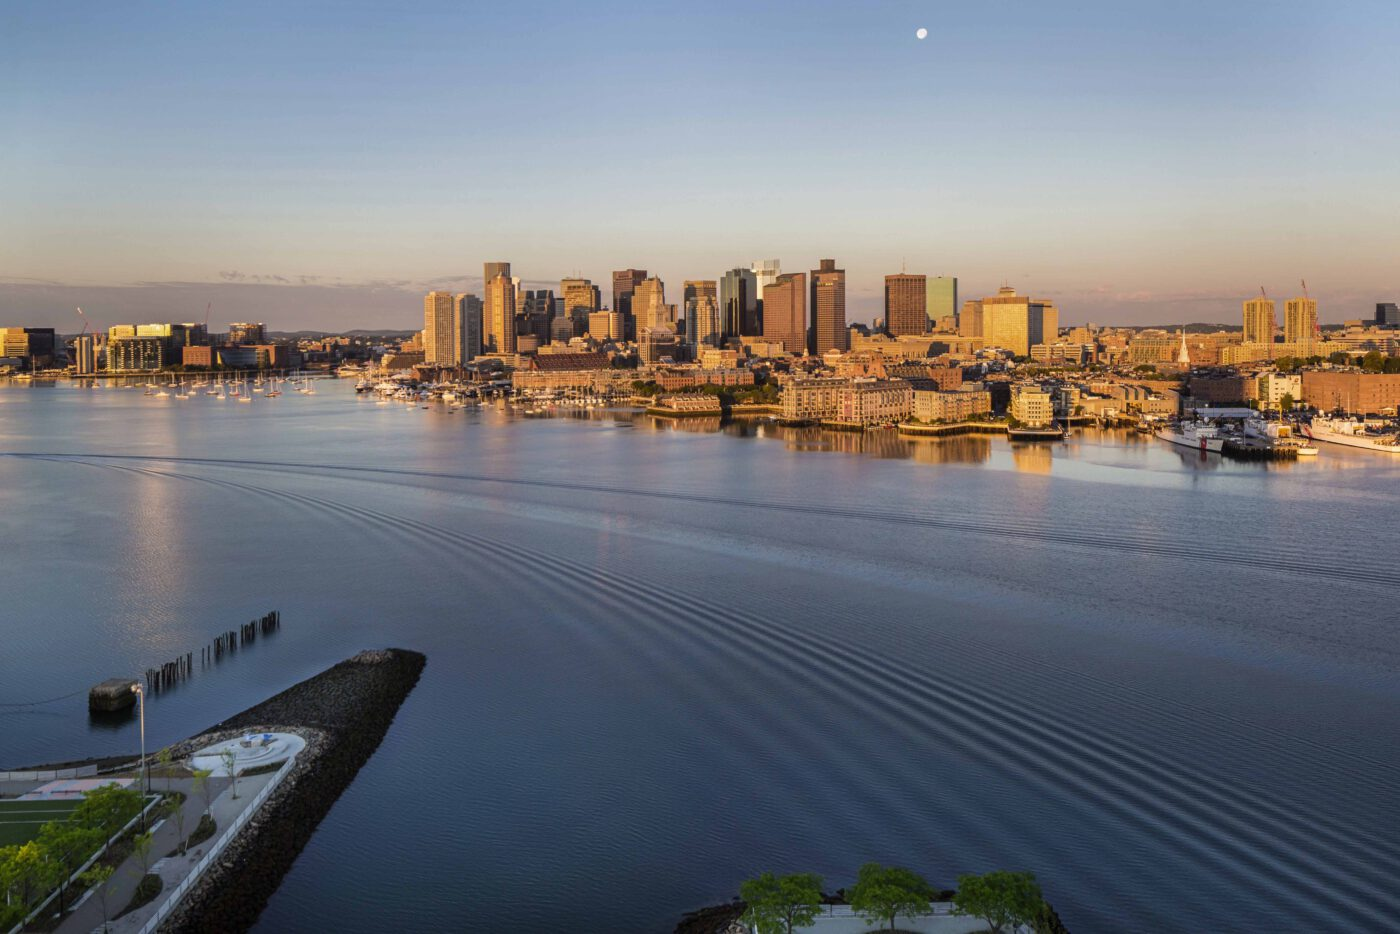 view of Boston skyline and water